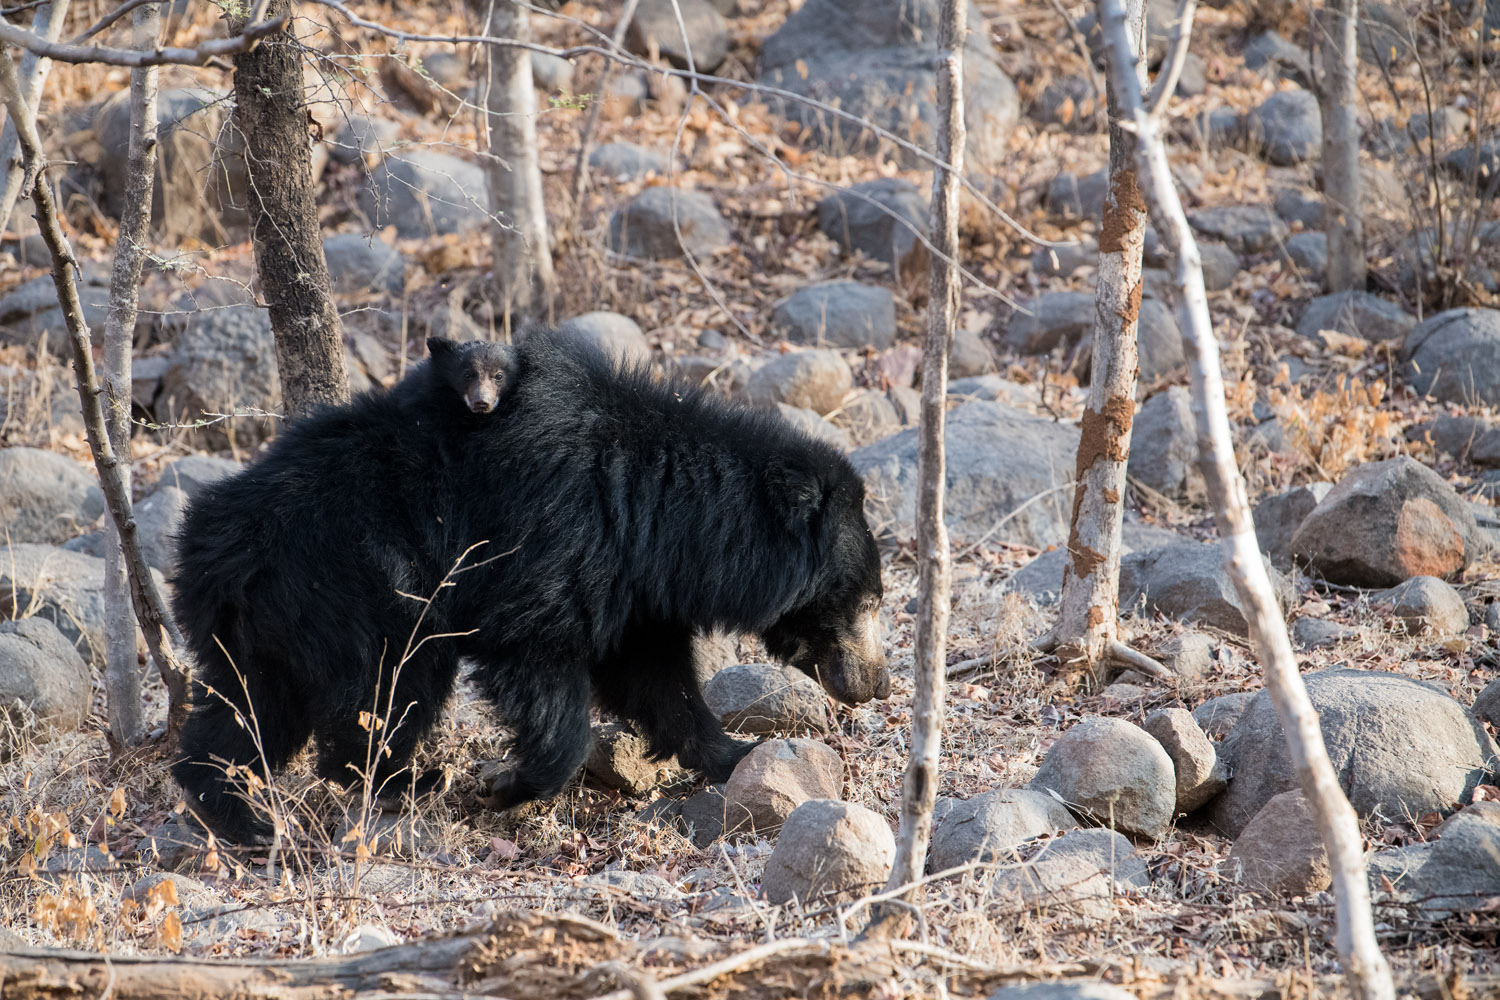 Sloth bear mother carrying cub on back, Ranthambhore National Park, Rajasthan, India